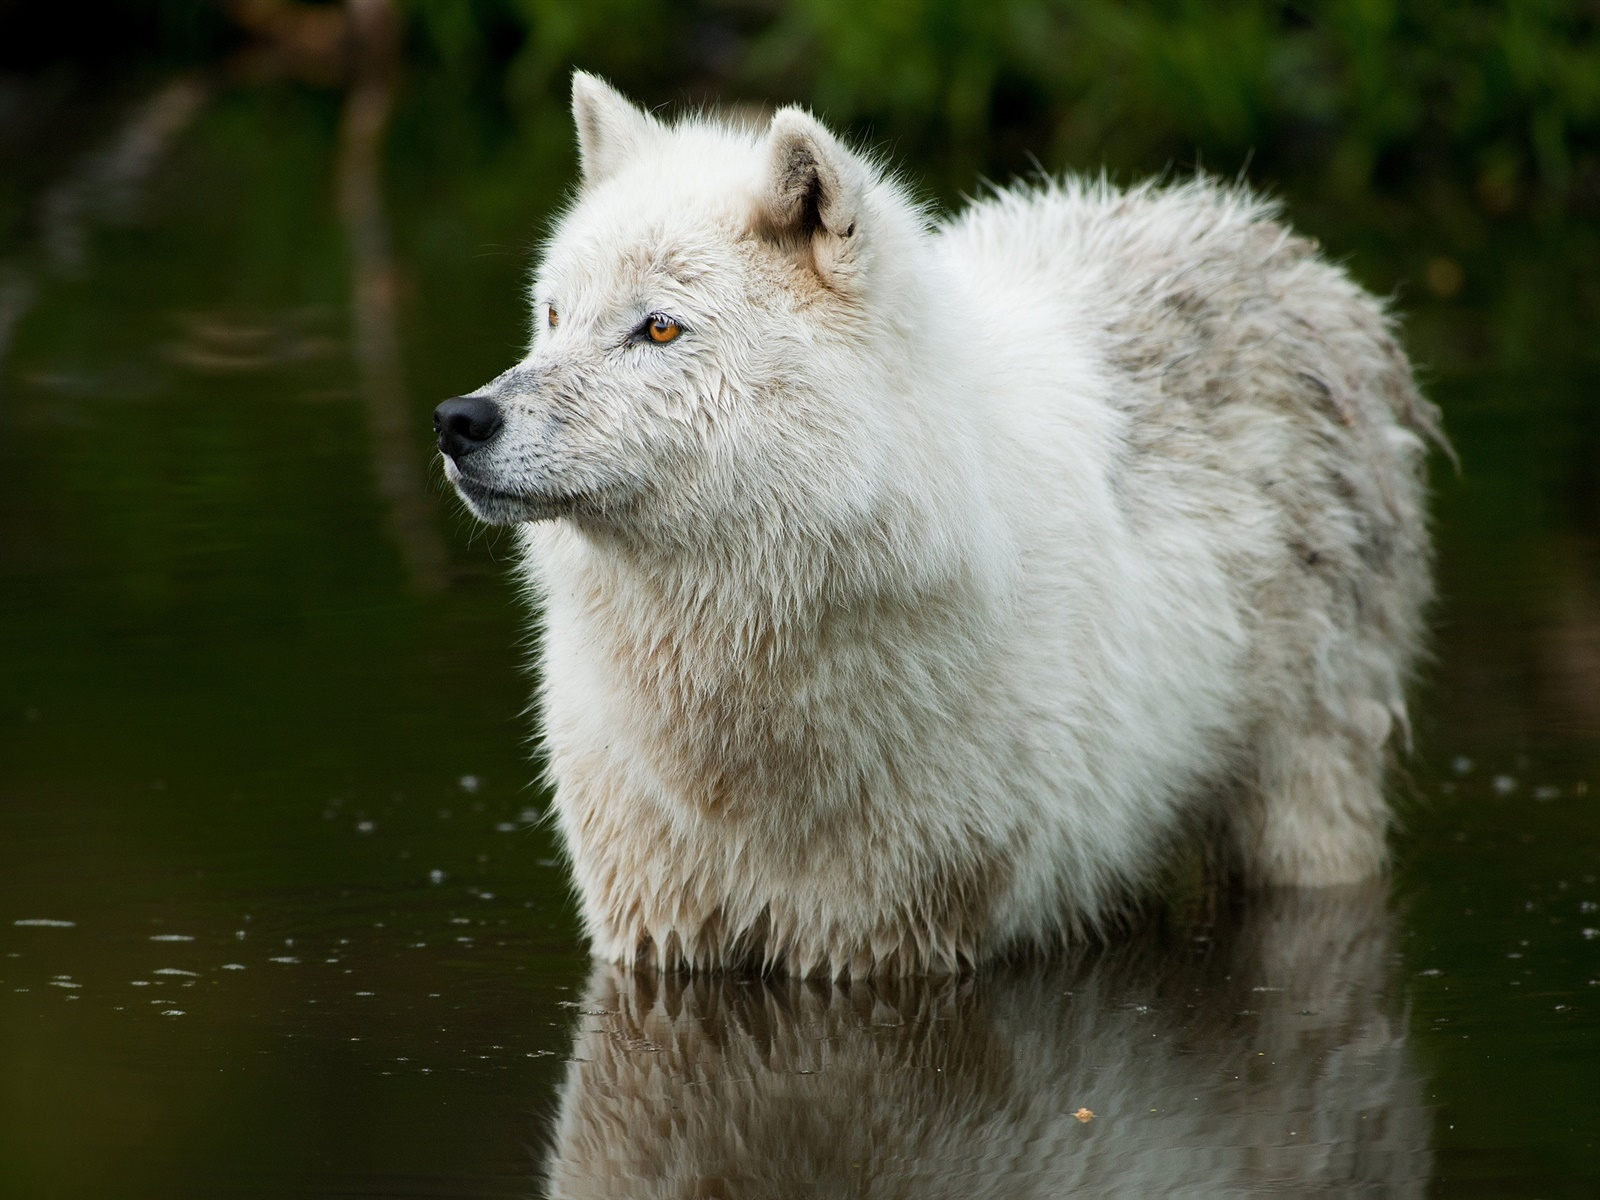 Wolf in the river 1600x1200 wallpaper